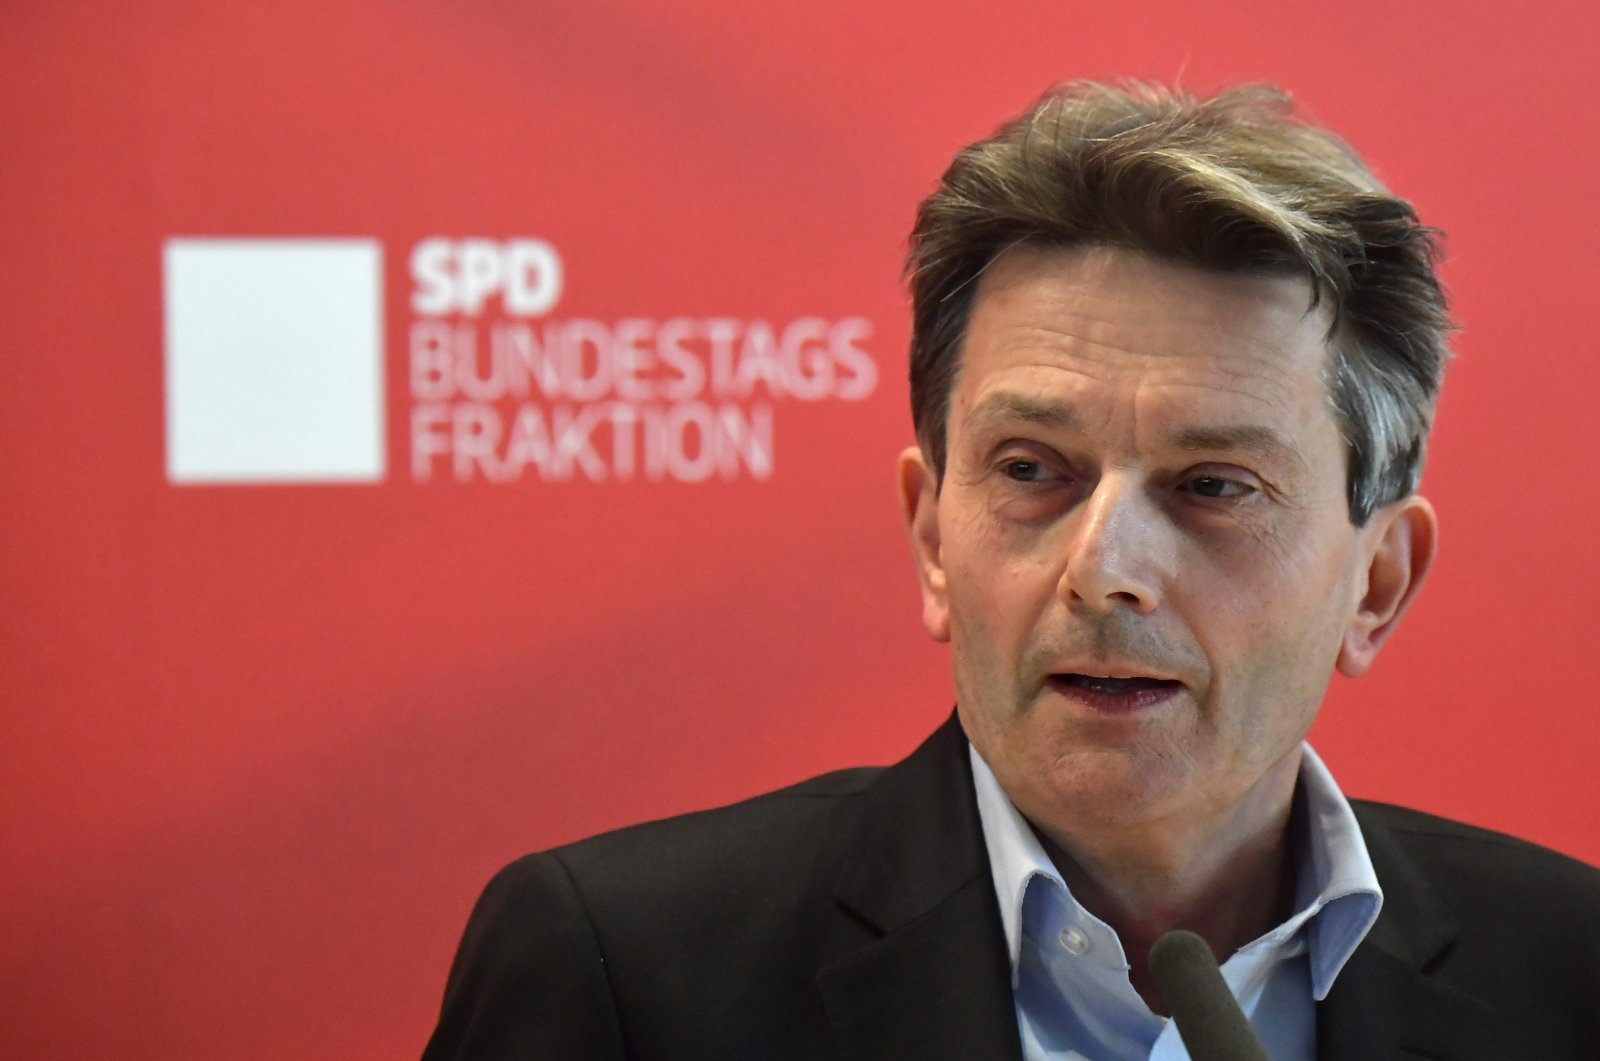 Rolf Muetzenich, parliamentary group leader of Germany's Social Democratic Party (SPD), addresses the media before a parliamentary group meeting in Berlin, Germany, Nov. 5, 2019. (AFP Photo)